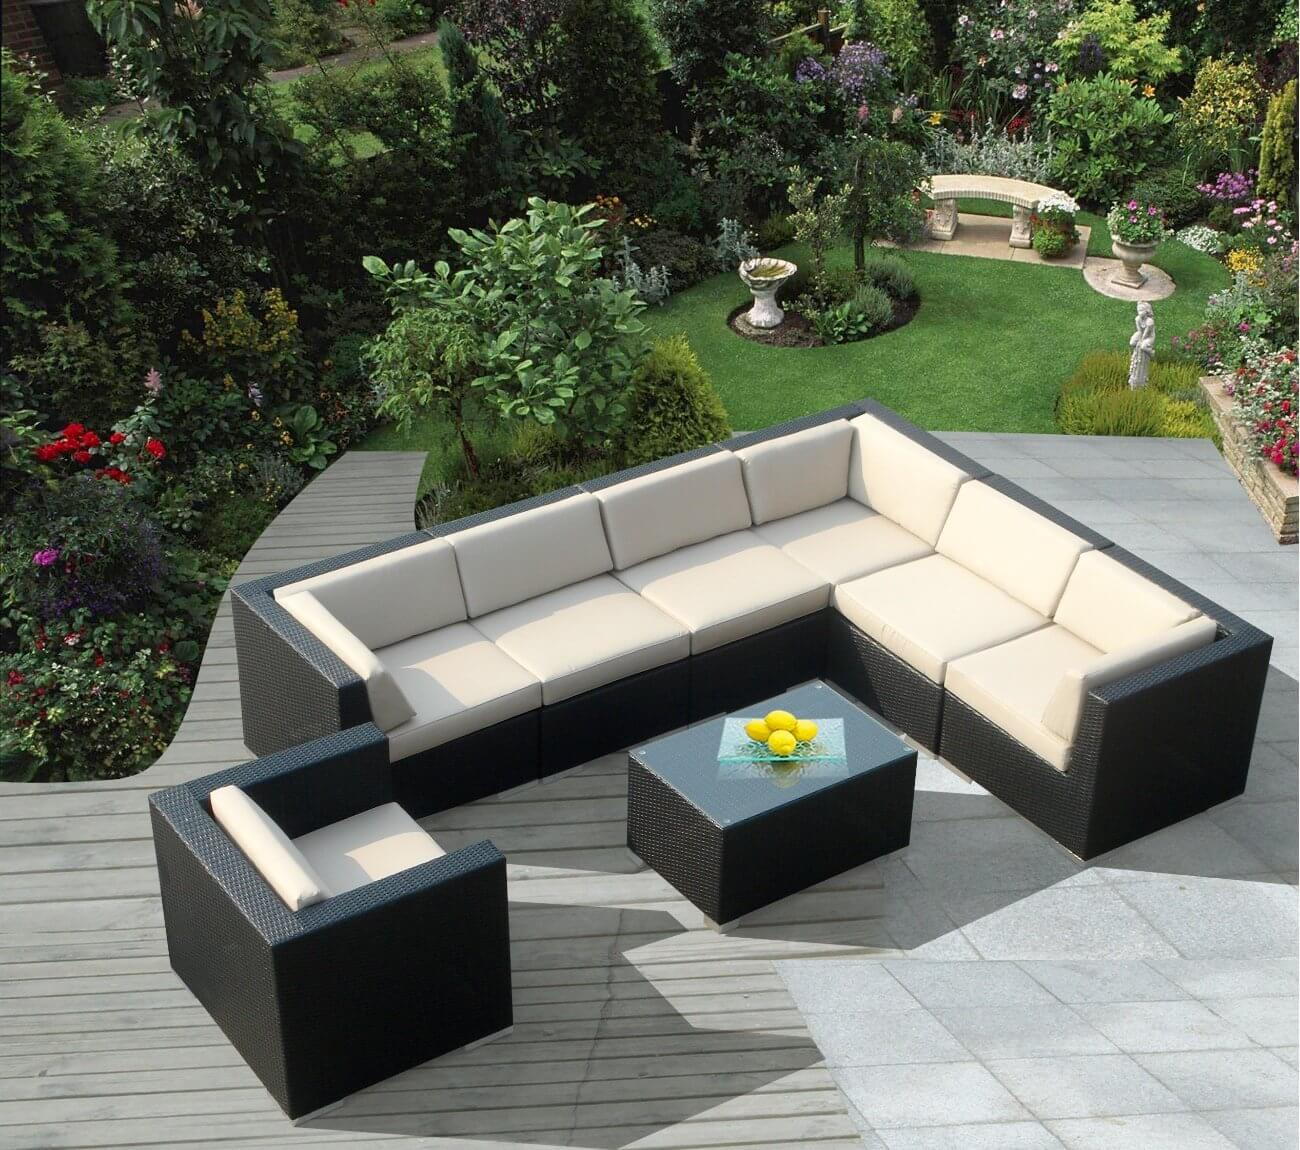 Lengthy L-shaped wicker patio sectional in black and eggshell tones features matching armchair plus glass-topped table for true conversational style.